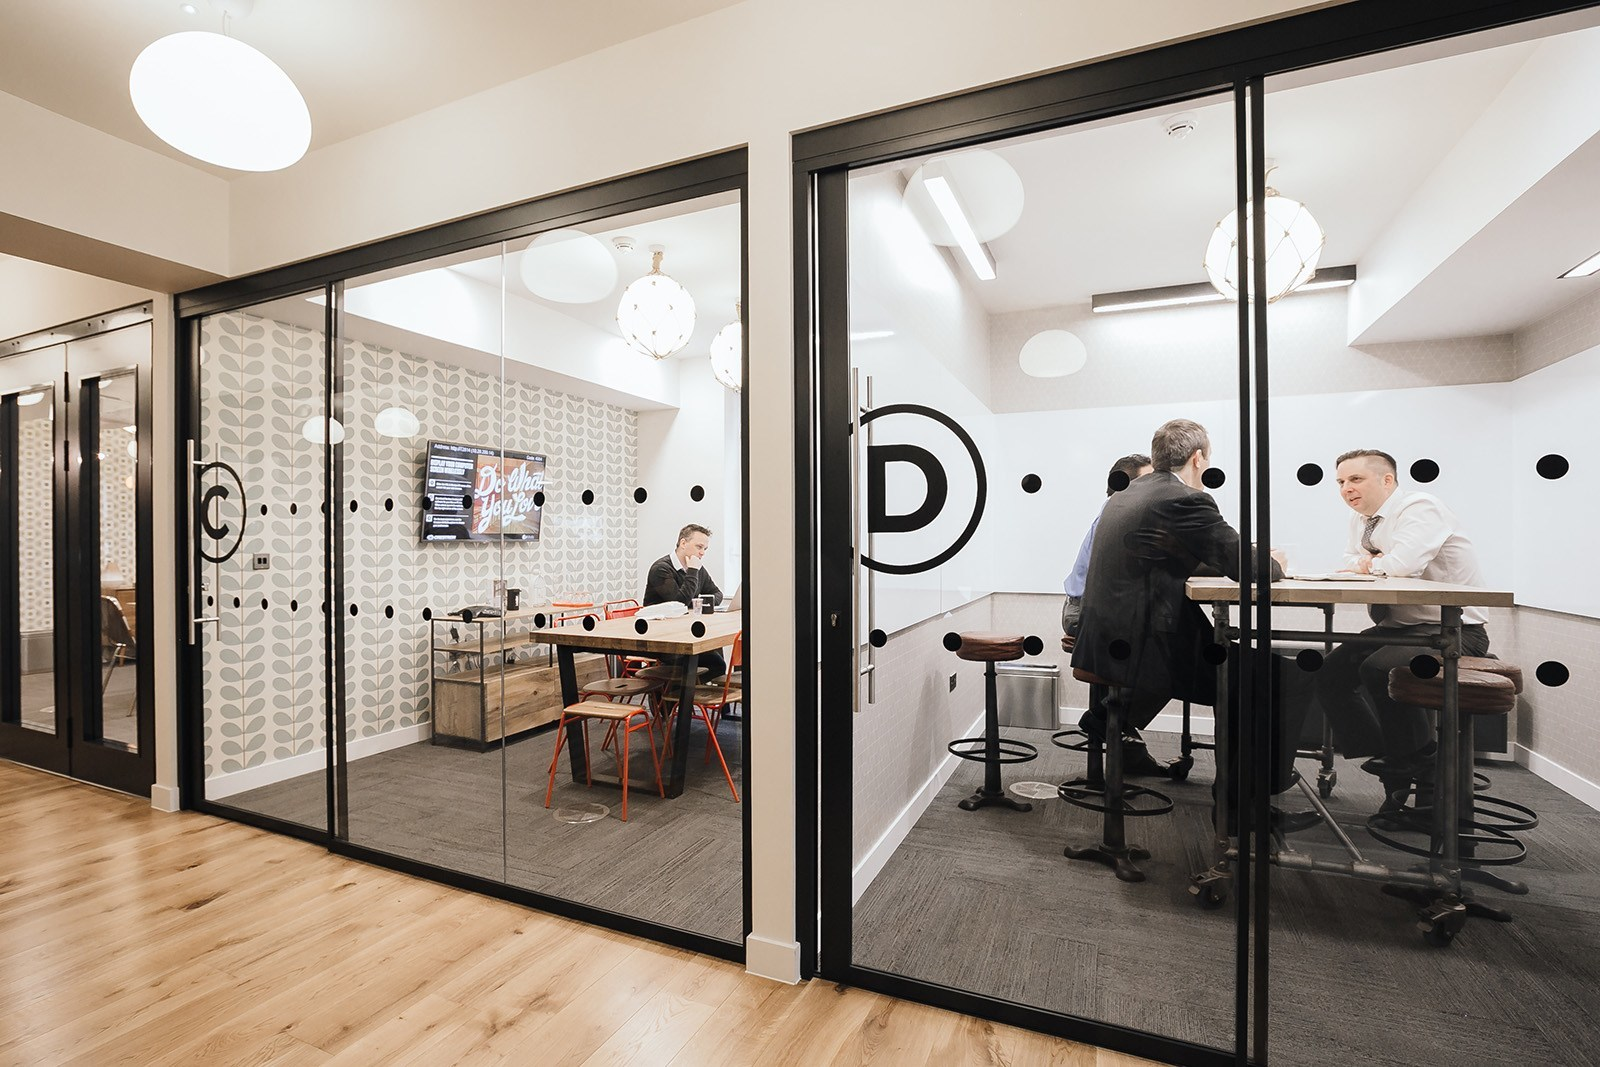 An exclusive look inside wework coworking in london s soho officelovin 39 - Small office space london property ...